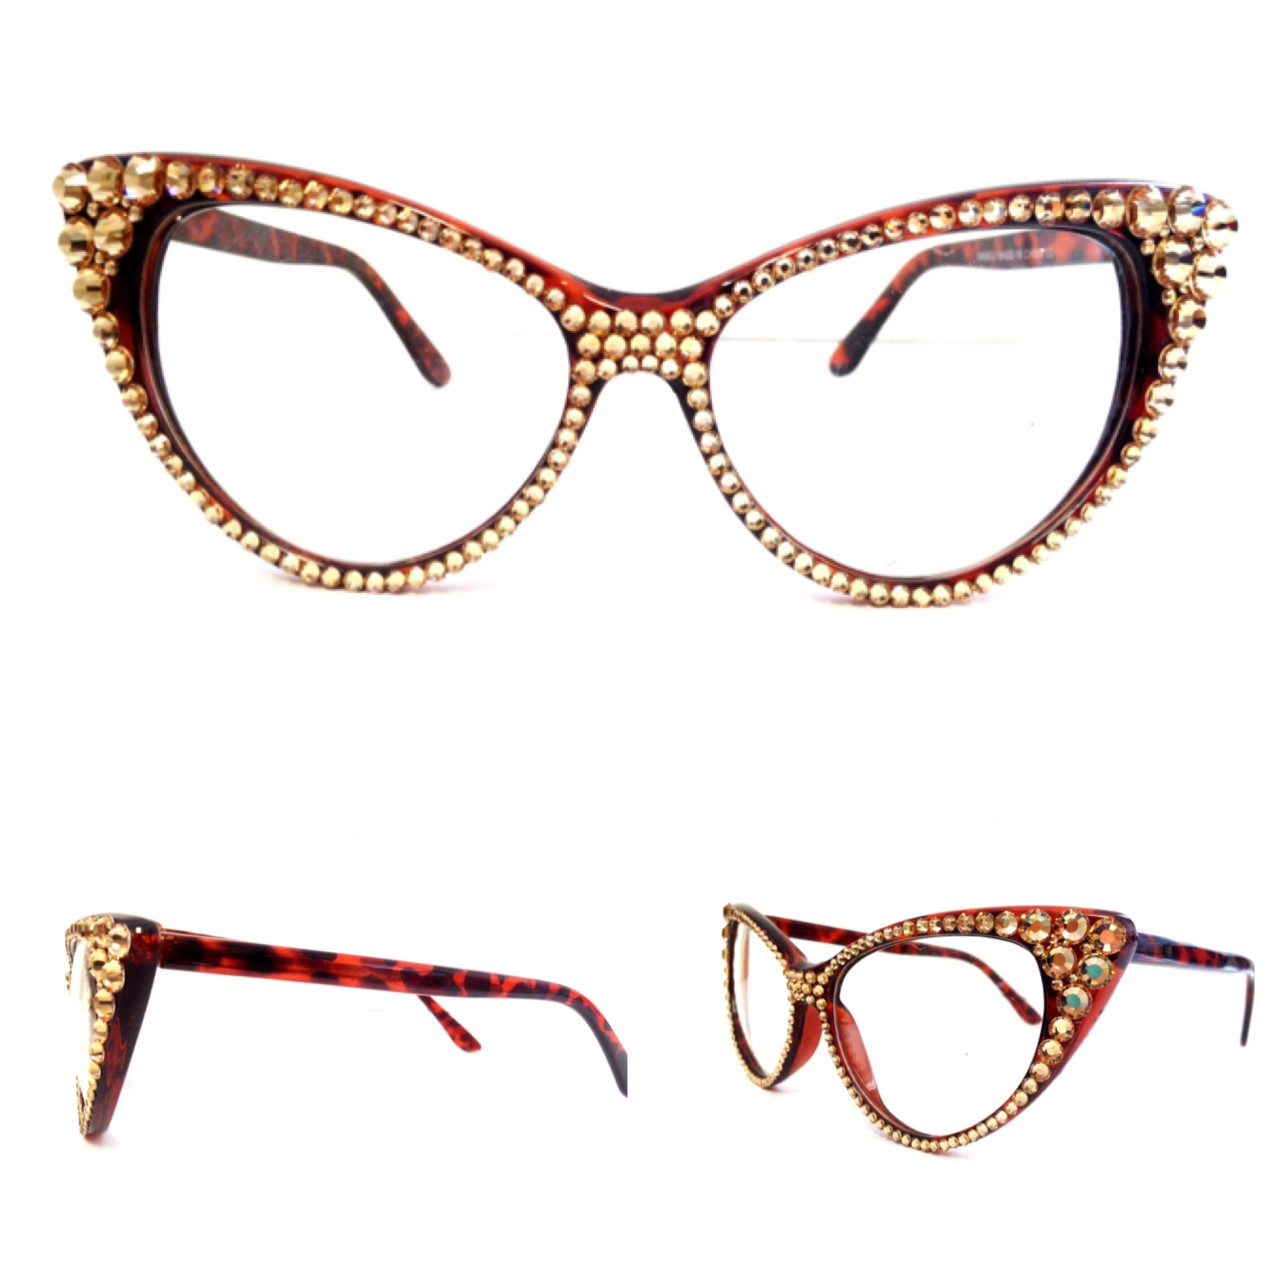 5098e0705f0 Discontinued Ray Ban Frames Only Glasses Frames « Heritage Malta